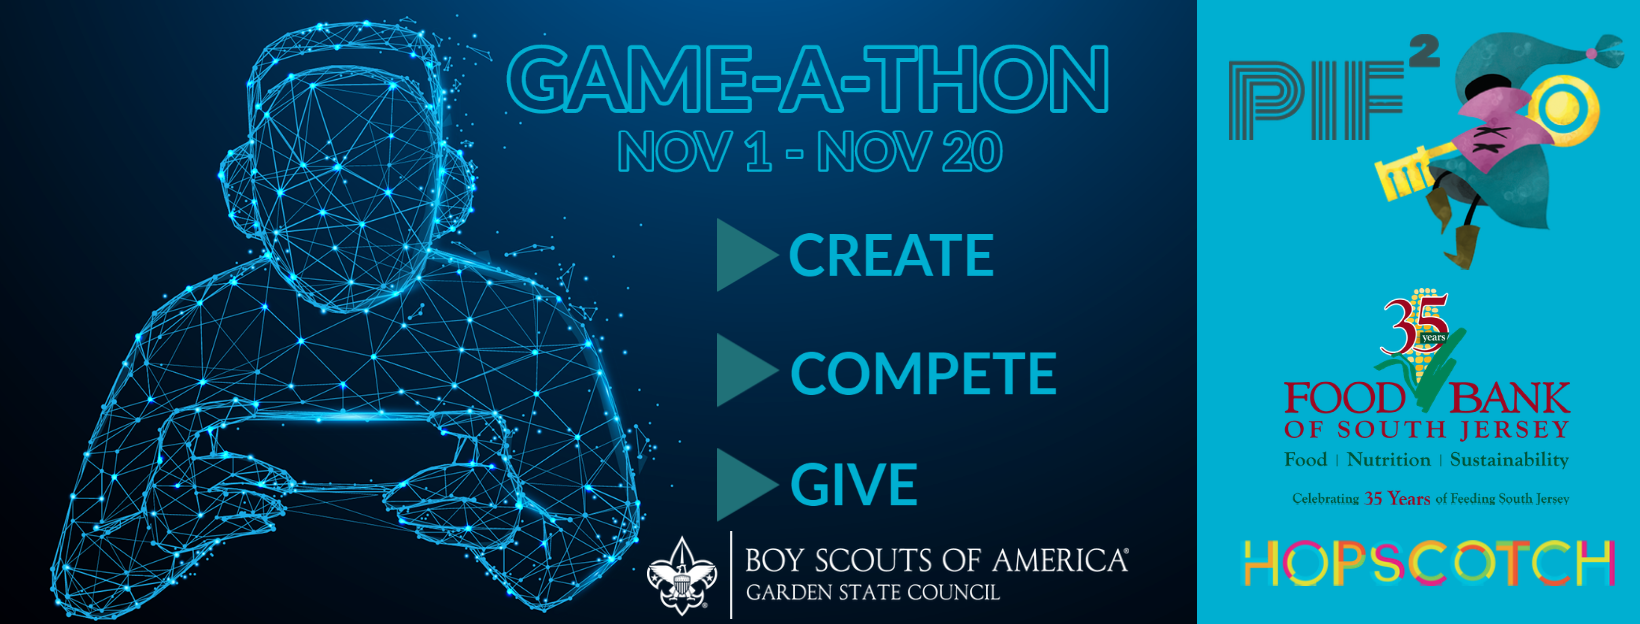 Game-A-Thon will run November 1 through November 20, 2020, for Scouts to Create, Compete, and Give to Scouting and the Food Bank of South Jersey through mobile app gaming.